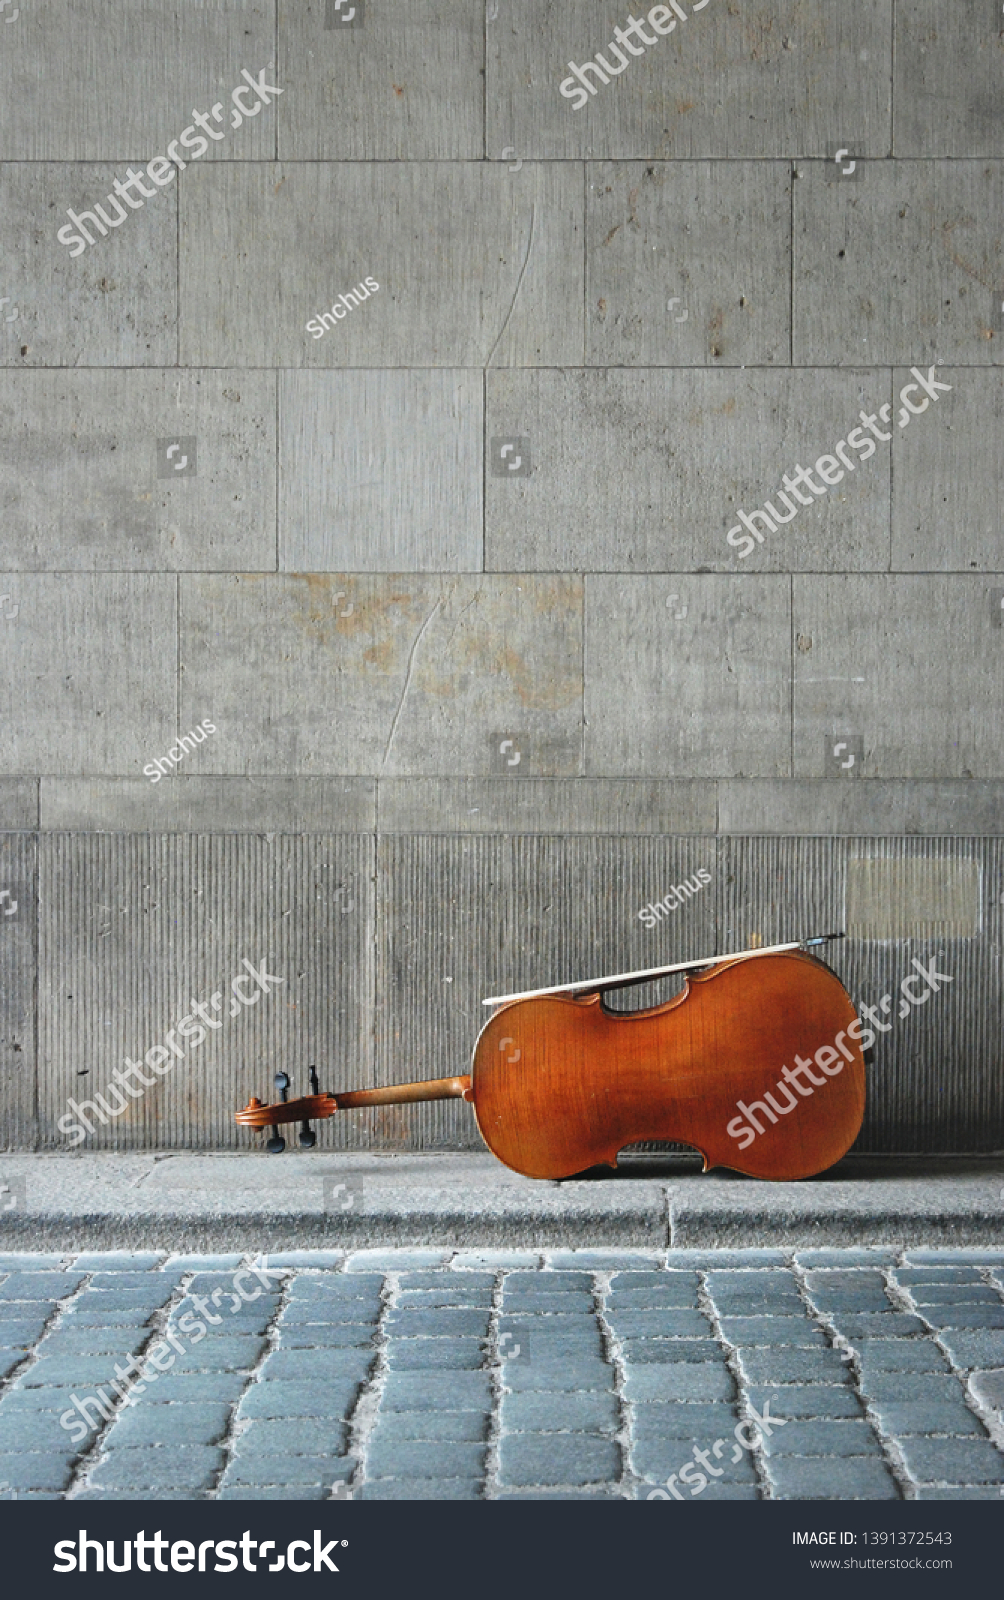 An old cello is lying on the floor against the background of a granite wall in an arch. The bow rests on the side of the instrument. The concept of a musician playing on the street.